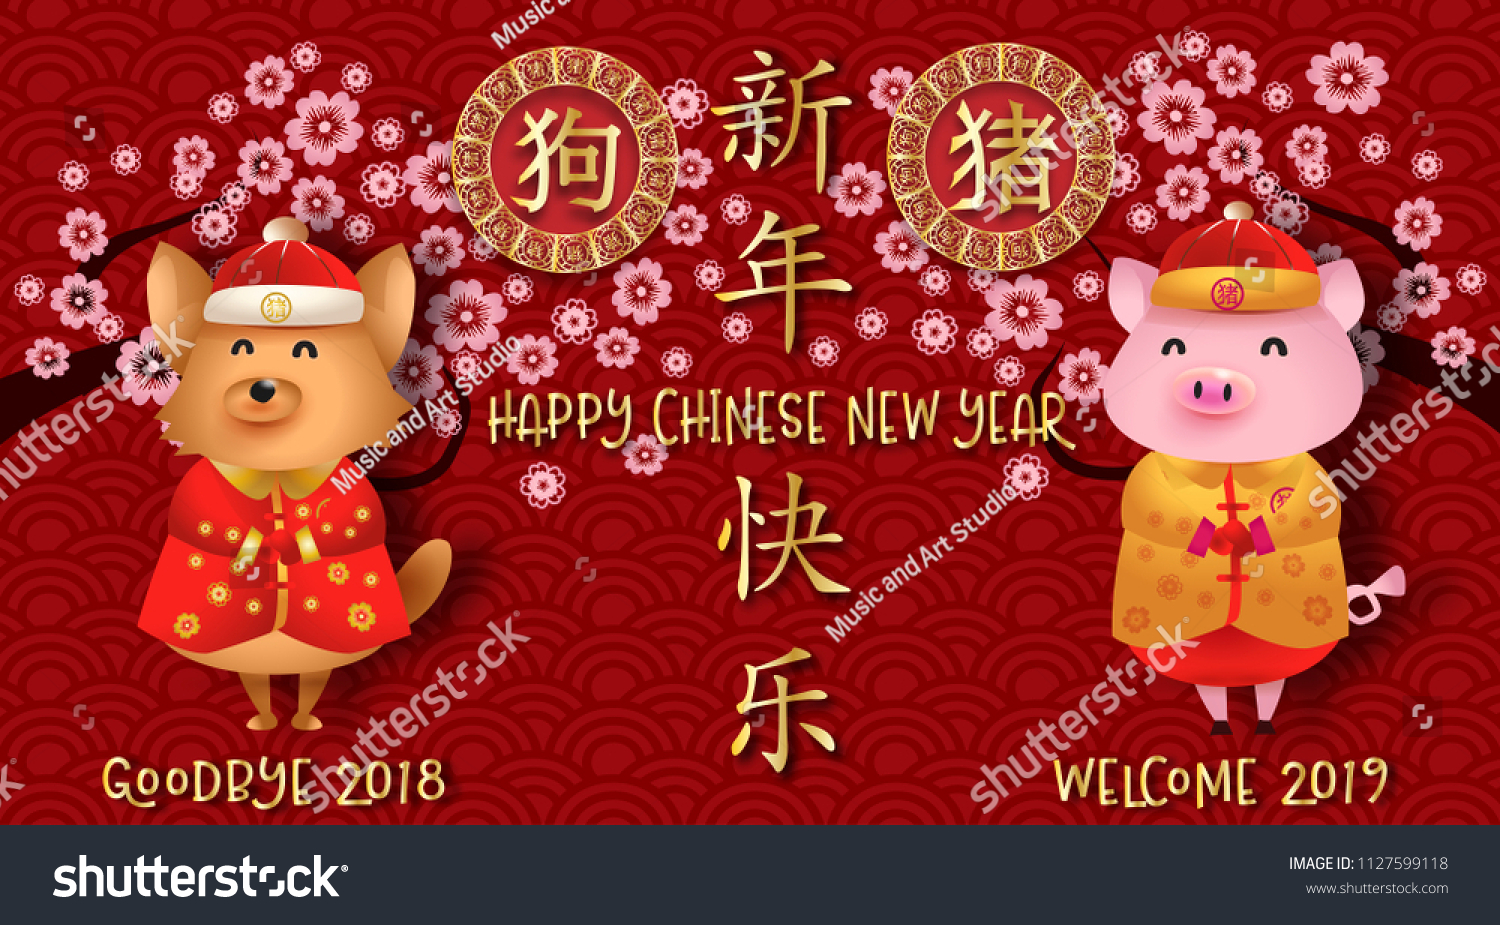 Happy Chinese New Year 2019 Year Piggreeting Stock Vector Royalty